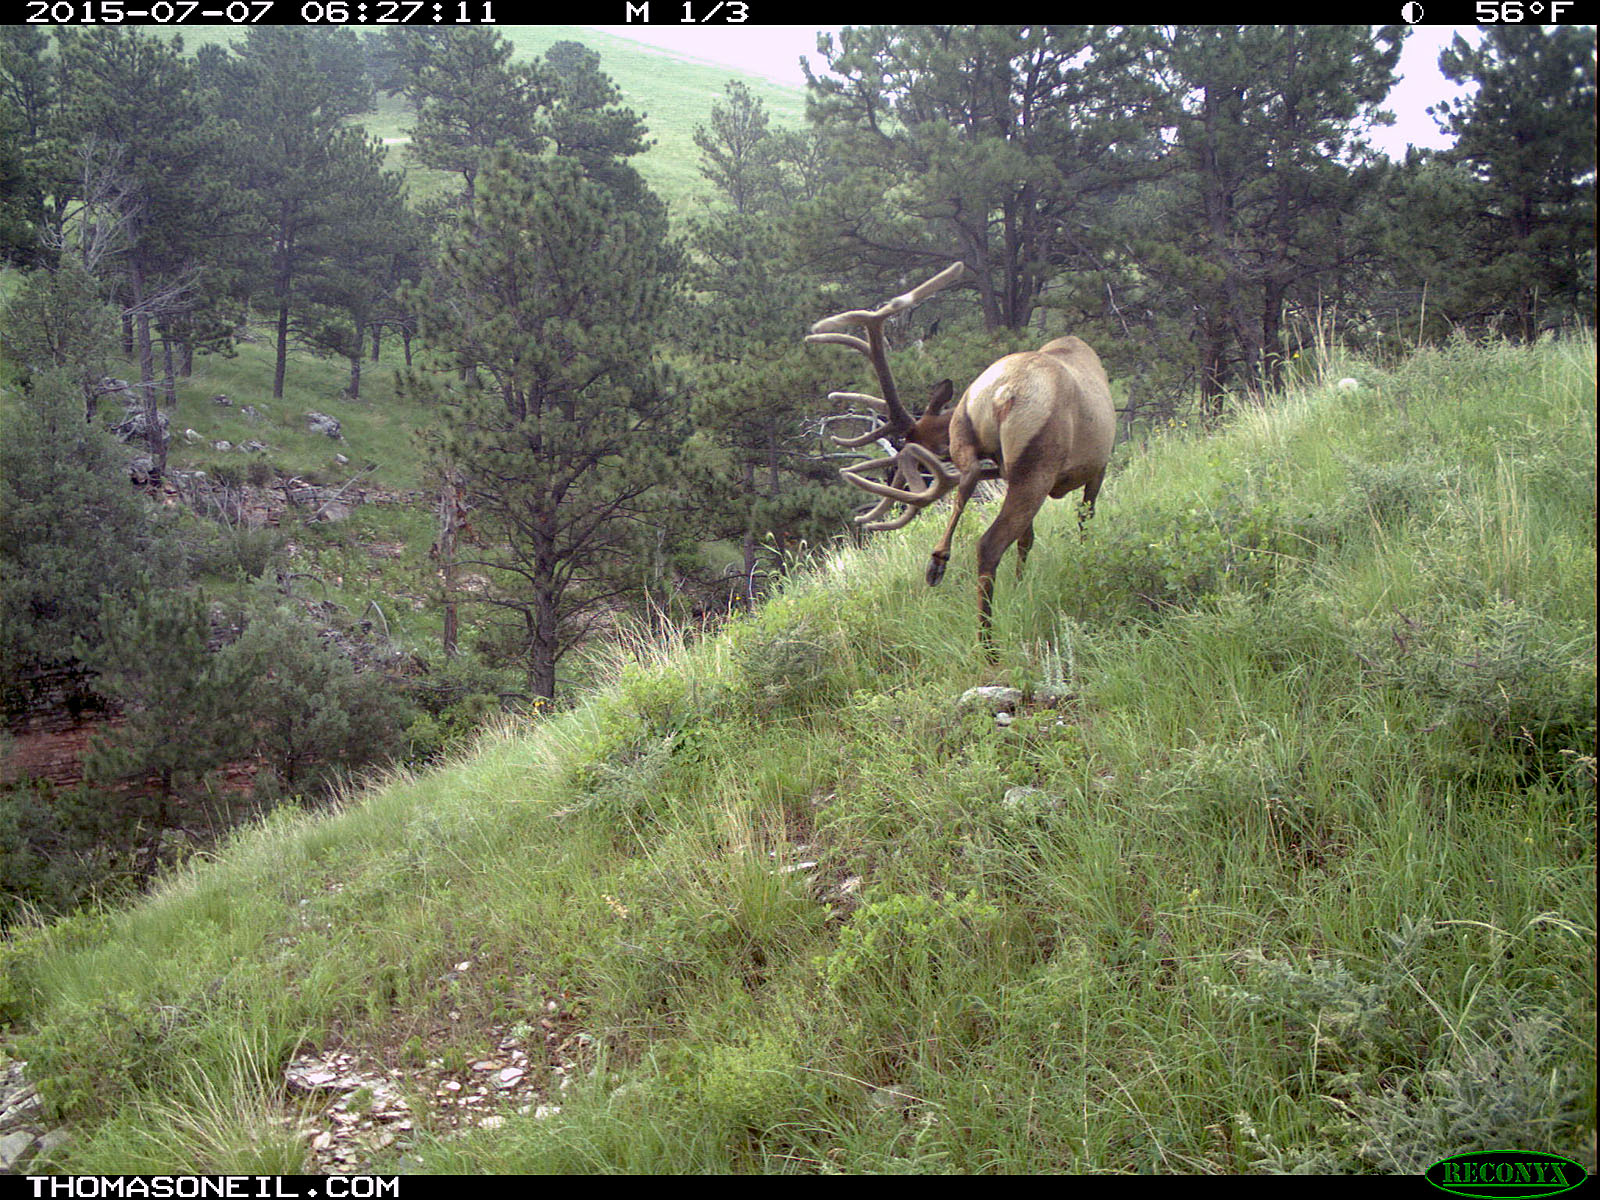 Elk scratching sequence on trailcam, 2 of 7, Wind Cave National Park, July 2015,   Click for next photo.